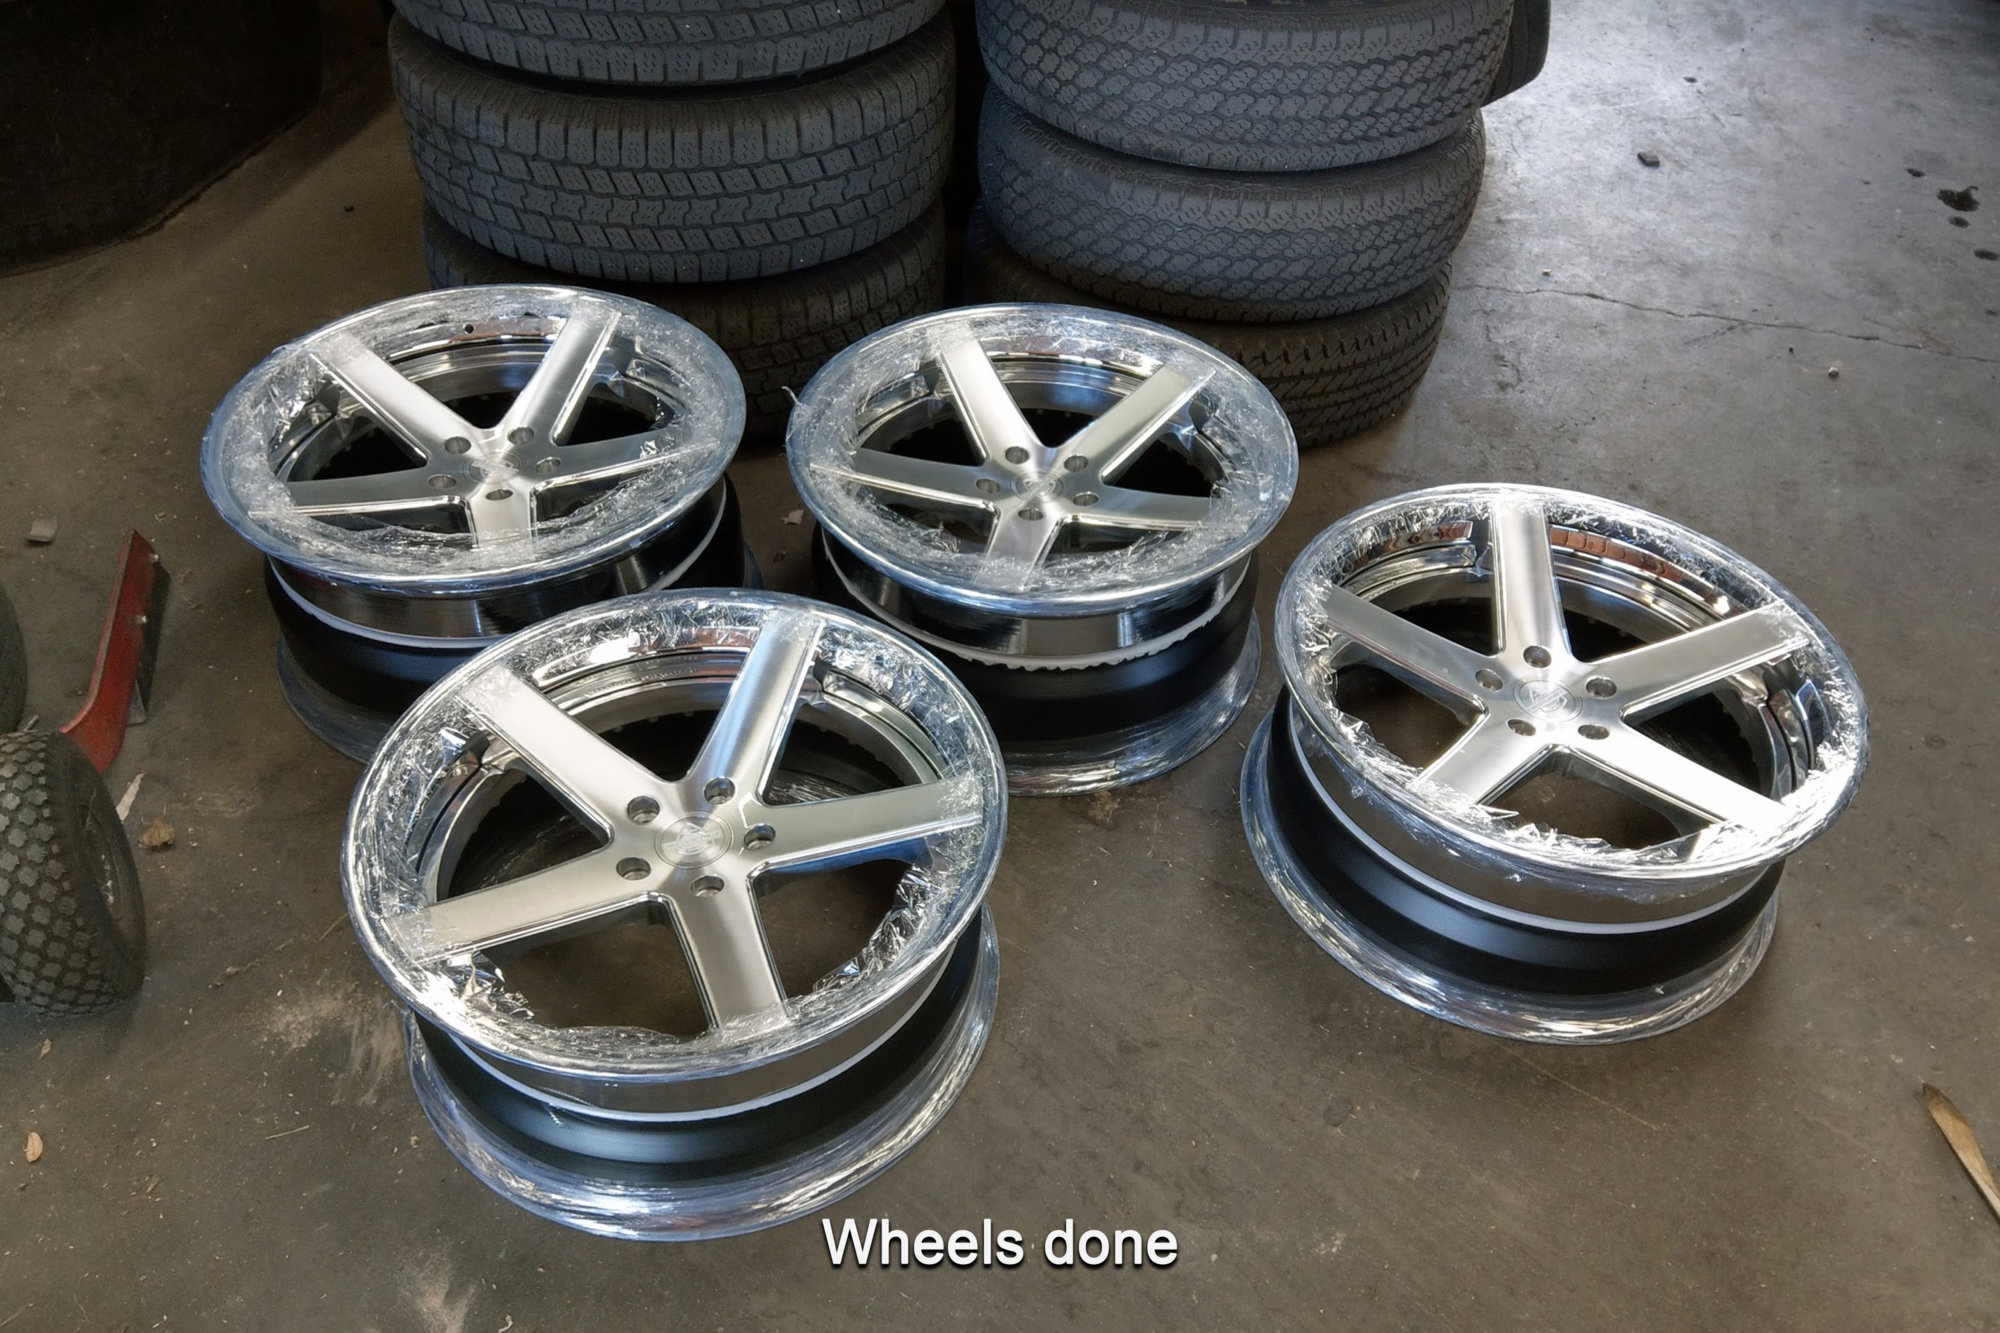 09_wheels done.jpg